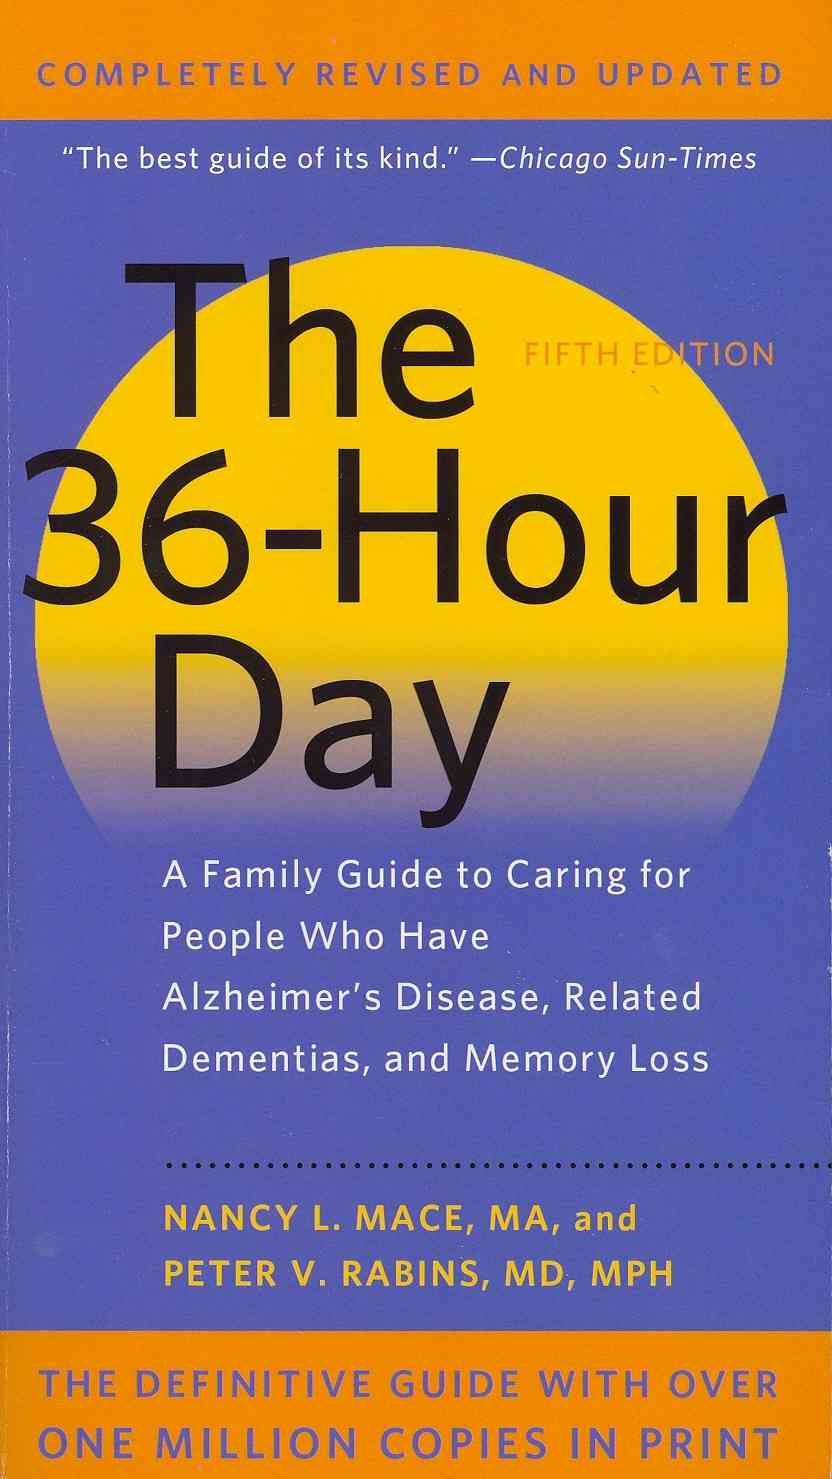 The 36-hour Day By Mace, Nancy L./ Rabins, Peter V.